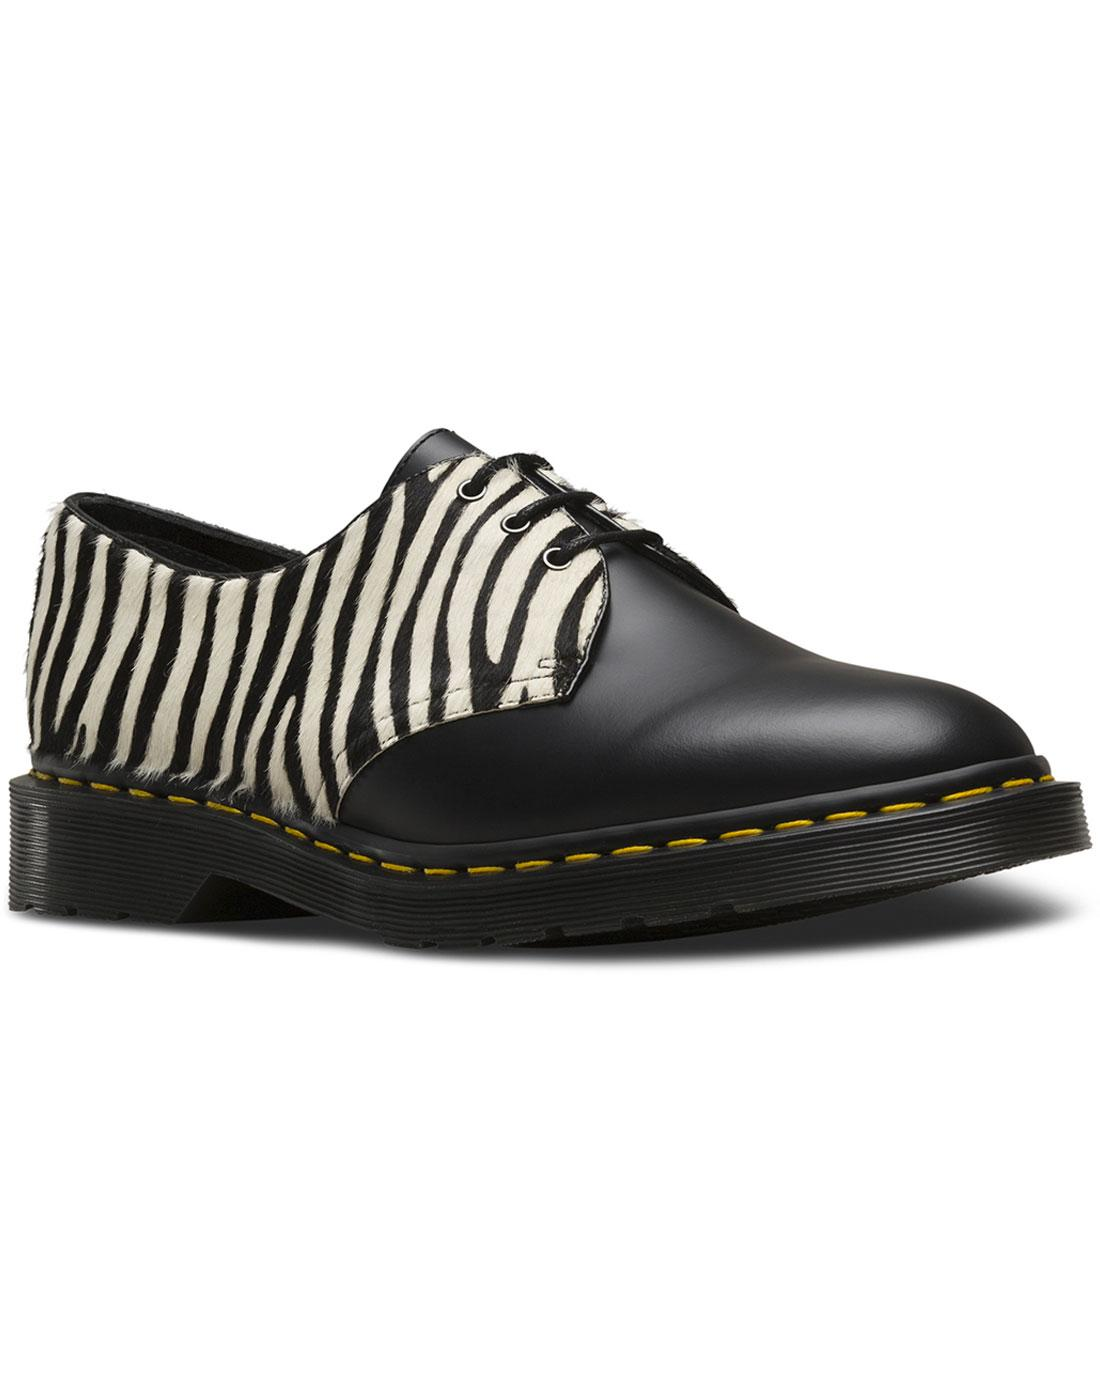 1461 DR MARTENS Retro 70s Faux Zebra Hair Shoes